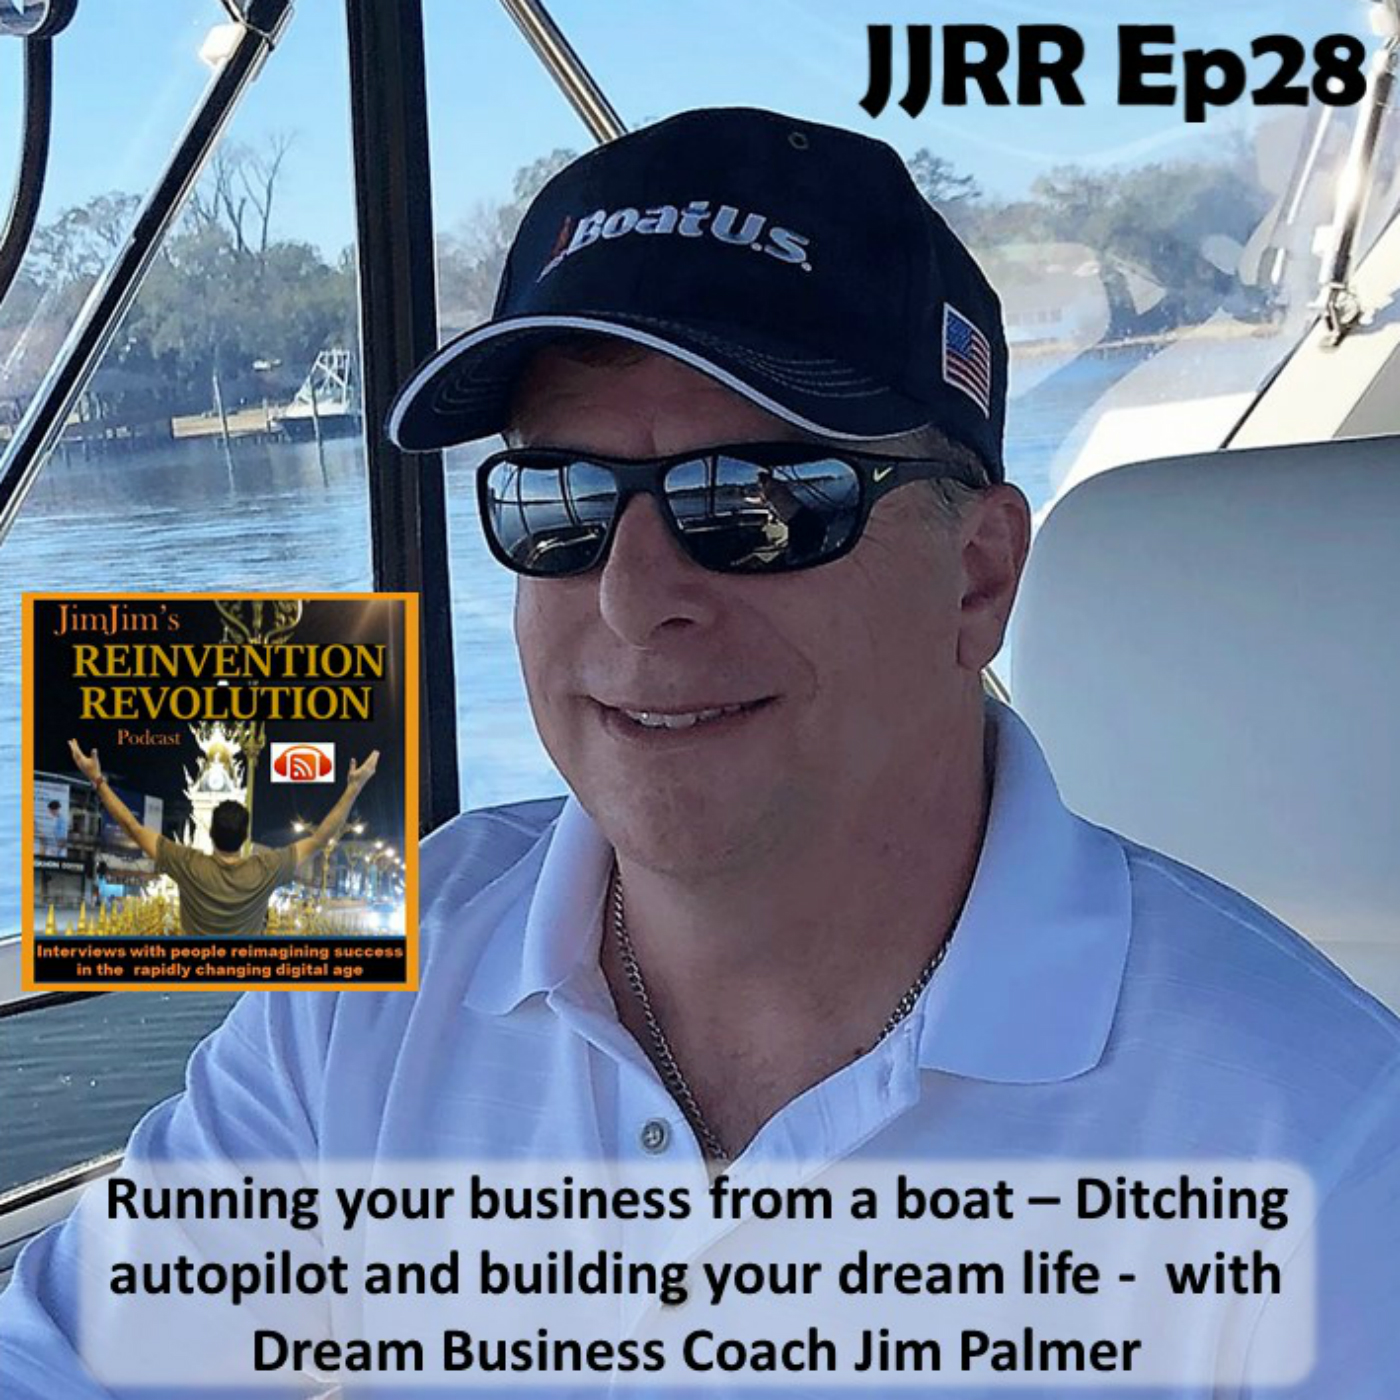 JJRR Ep28 Running your business from a boat – Ditching autopilot and building your dream life – with Dream Business Coach Jim Palmer